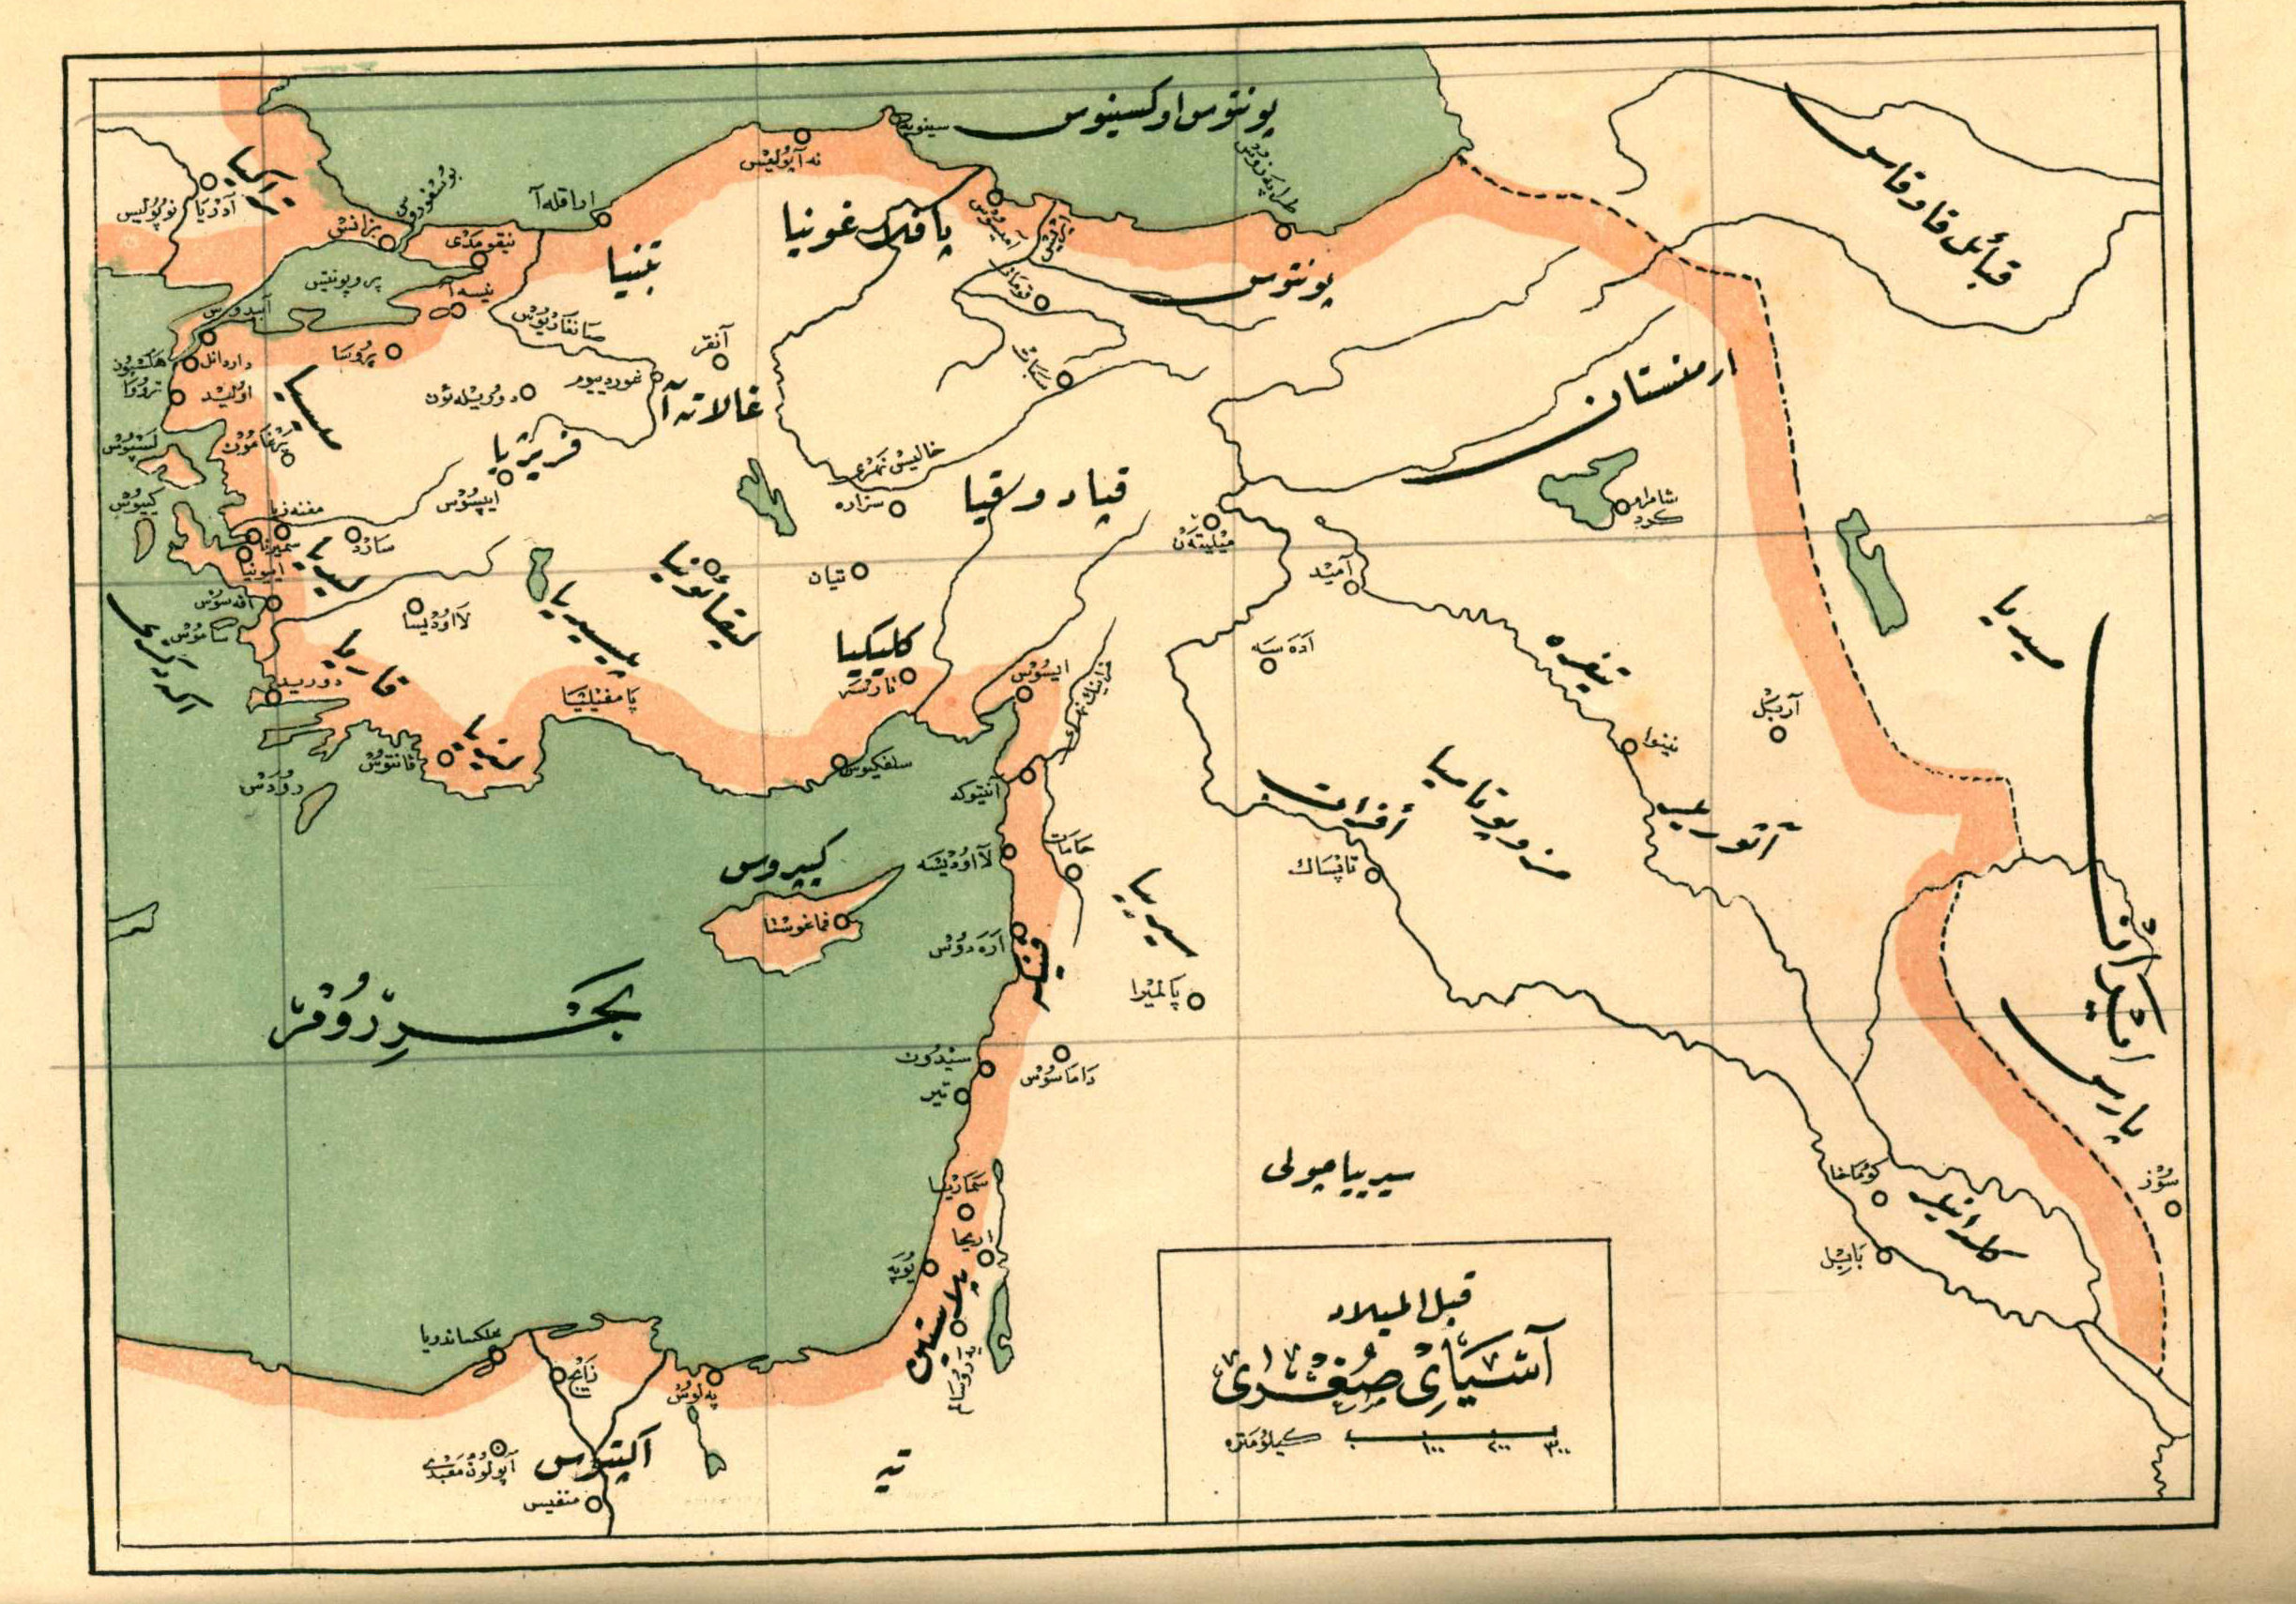 Afternoon Map: Ottoman and Arab Maps of Palestine, 1880s-1910s